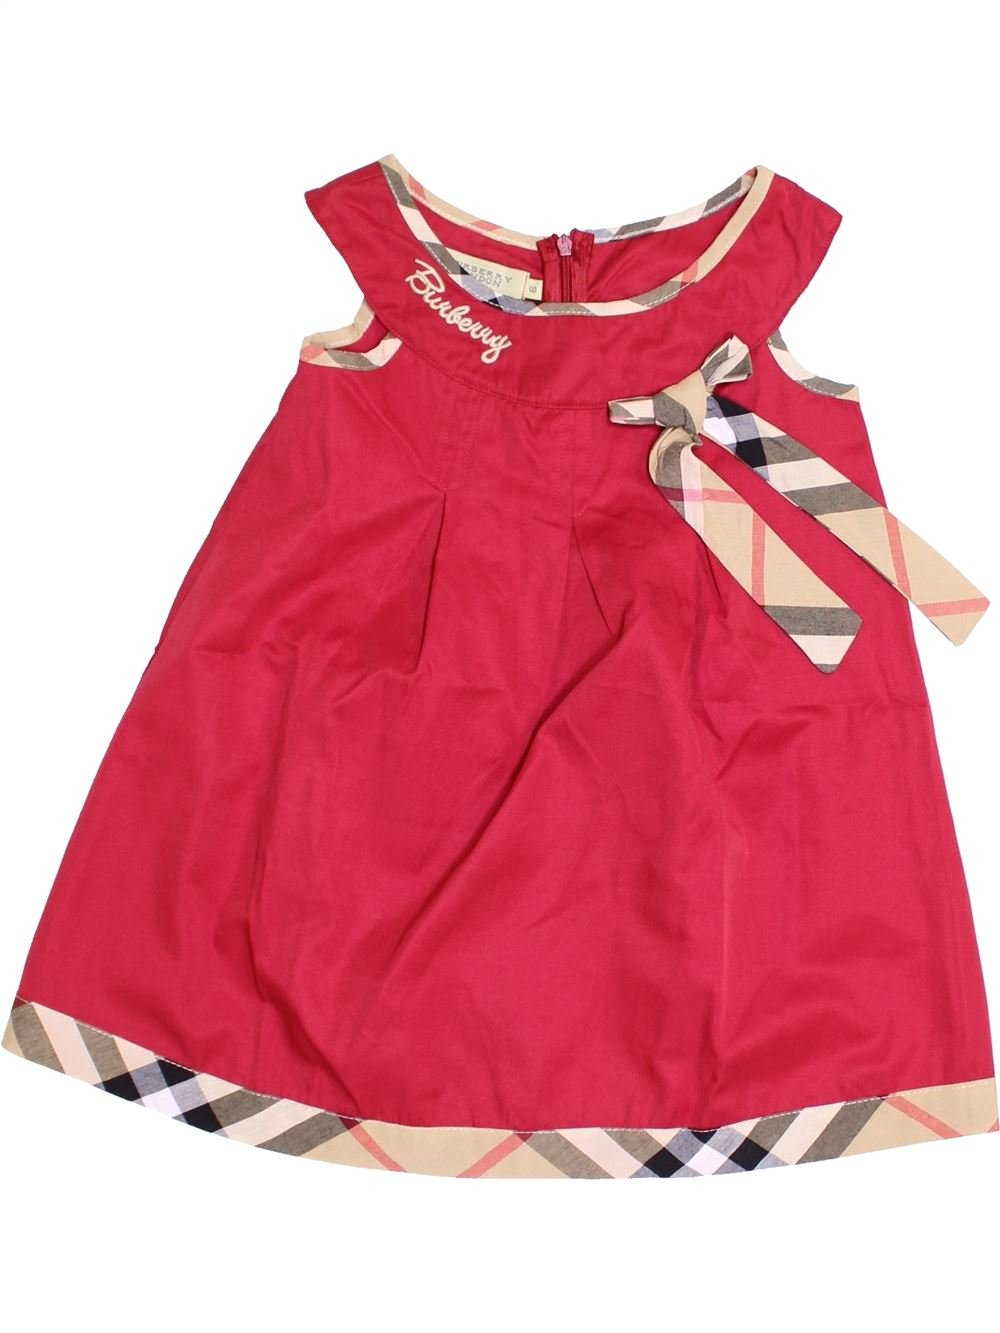 Robe Fille Burberry 6 Ans Pas Cher 21 99 1341410